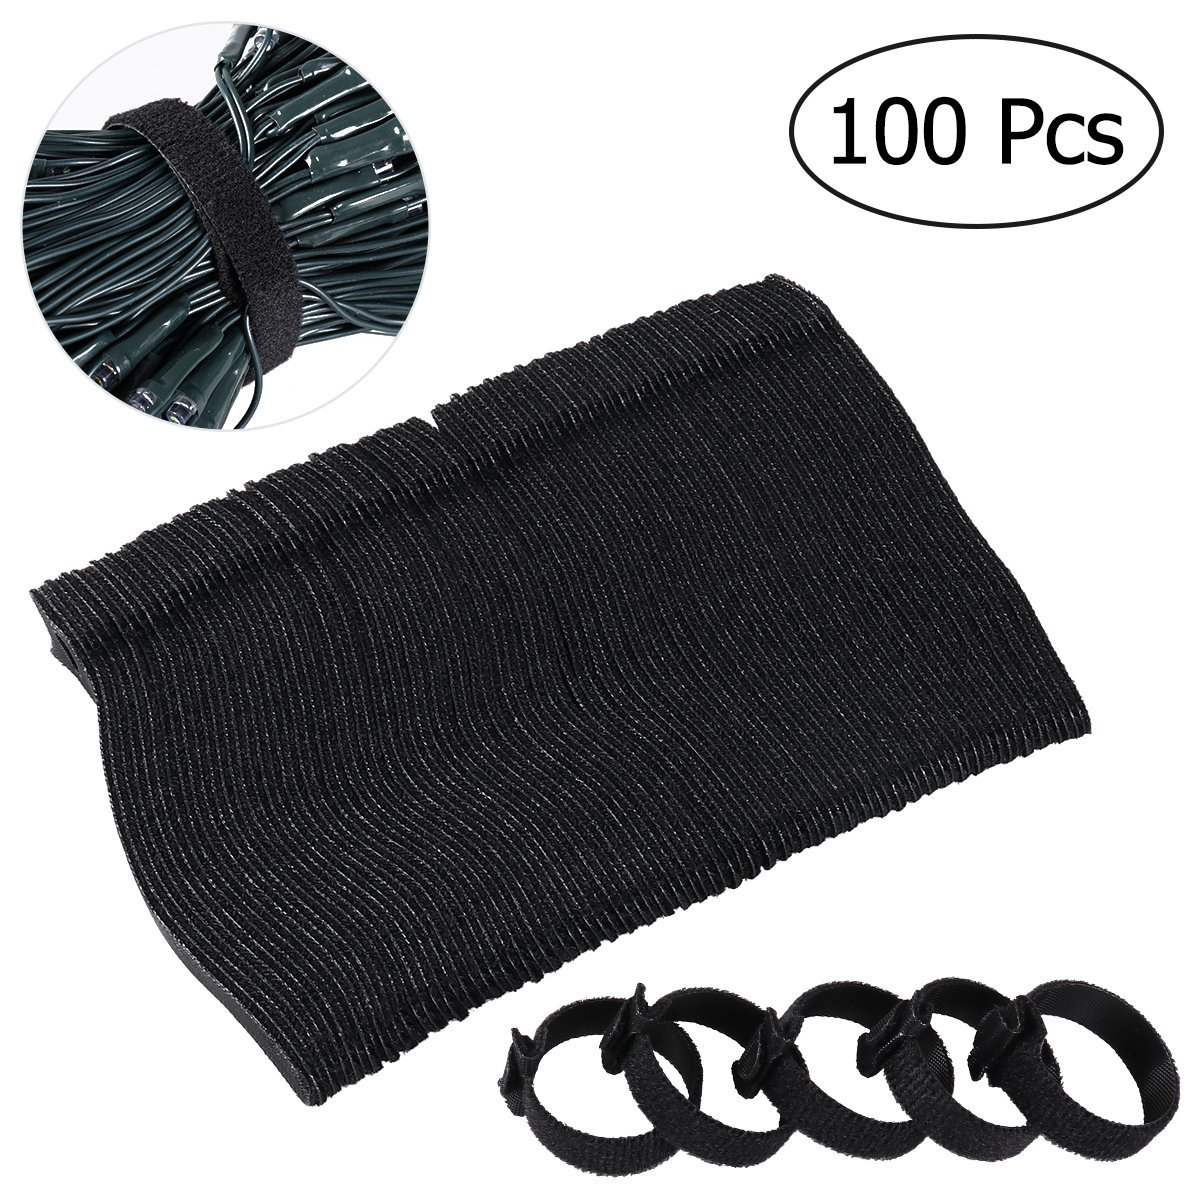 OUNONA 100pcs Cable Ties 6 Inch Fastening Cable Ties with Reusable Hook and Loop Strap Cable Ties for Organizer Fastening (Black)